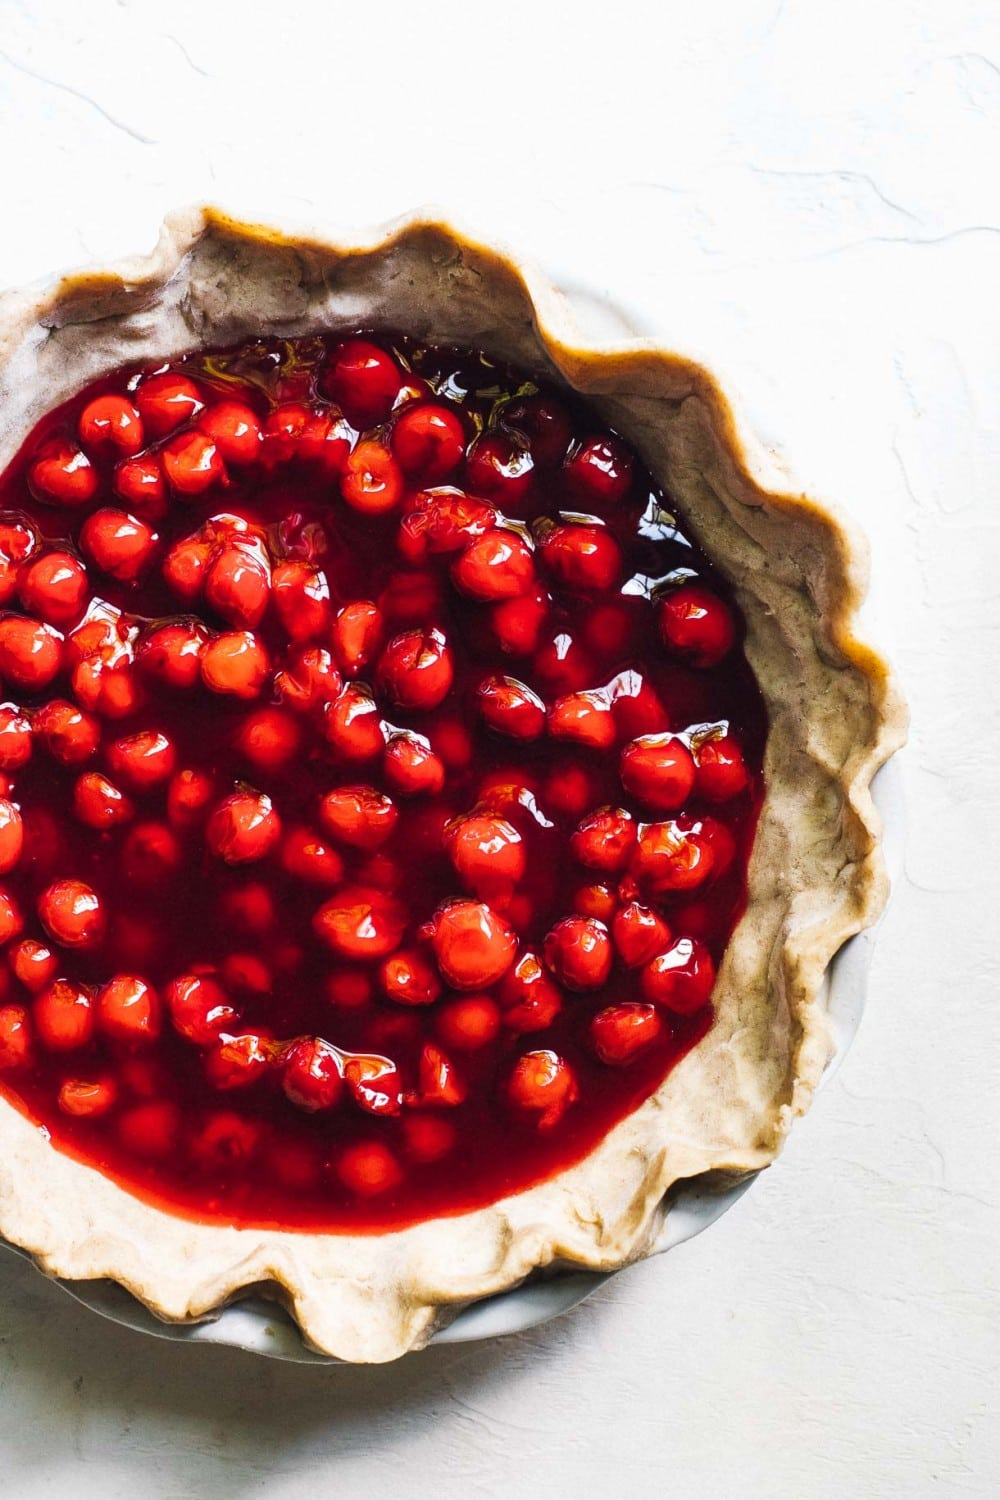 unbaked tart cherry pie